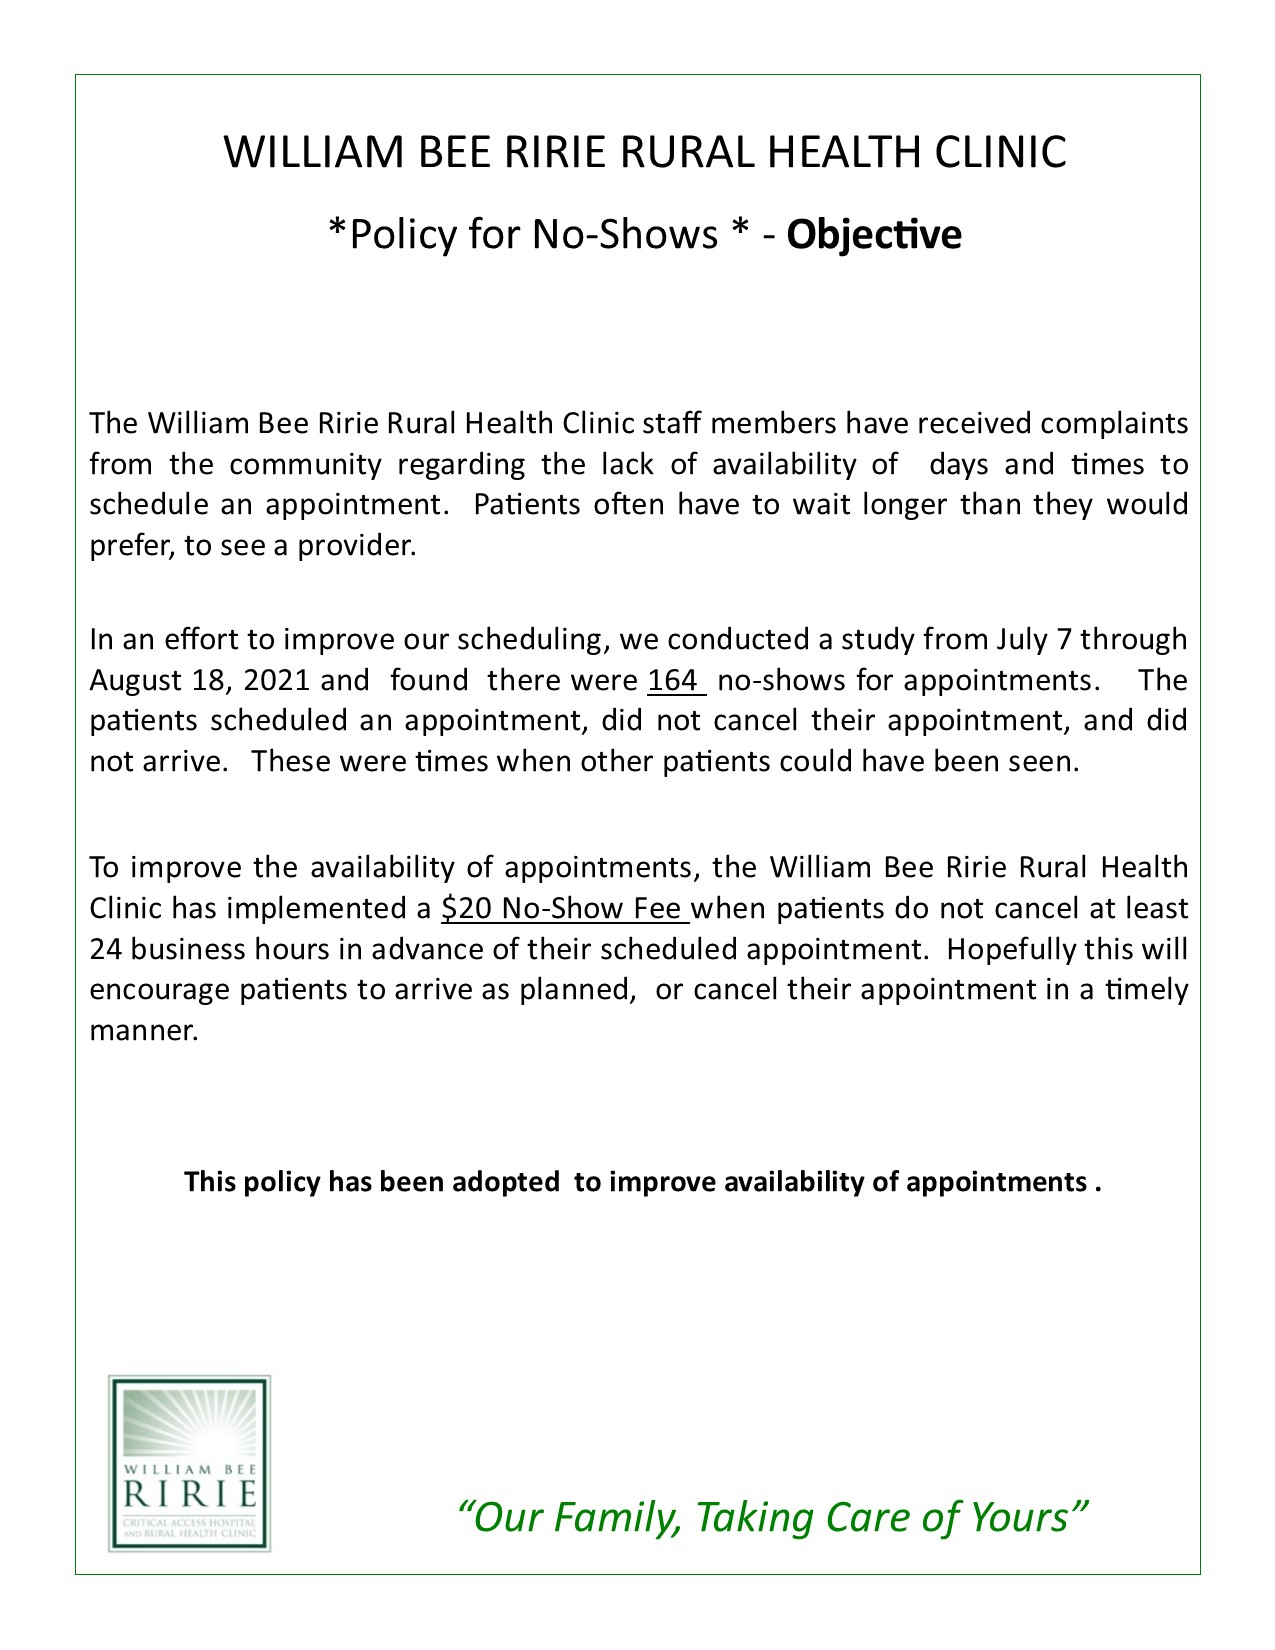 No Show Policy - Objective